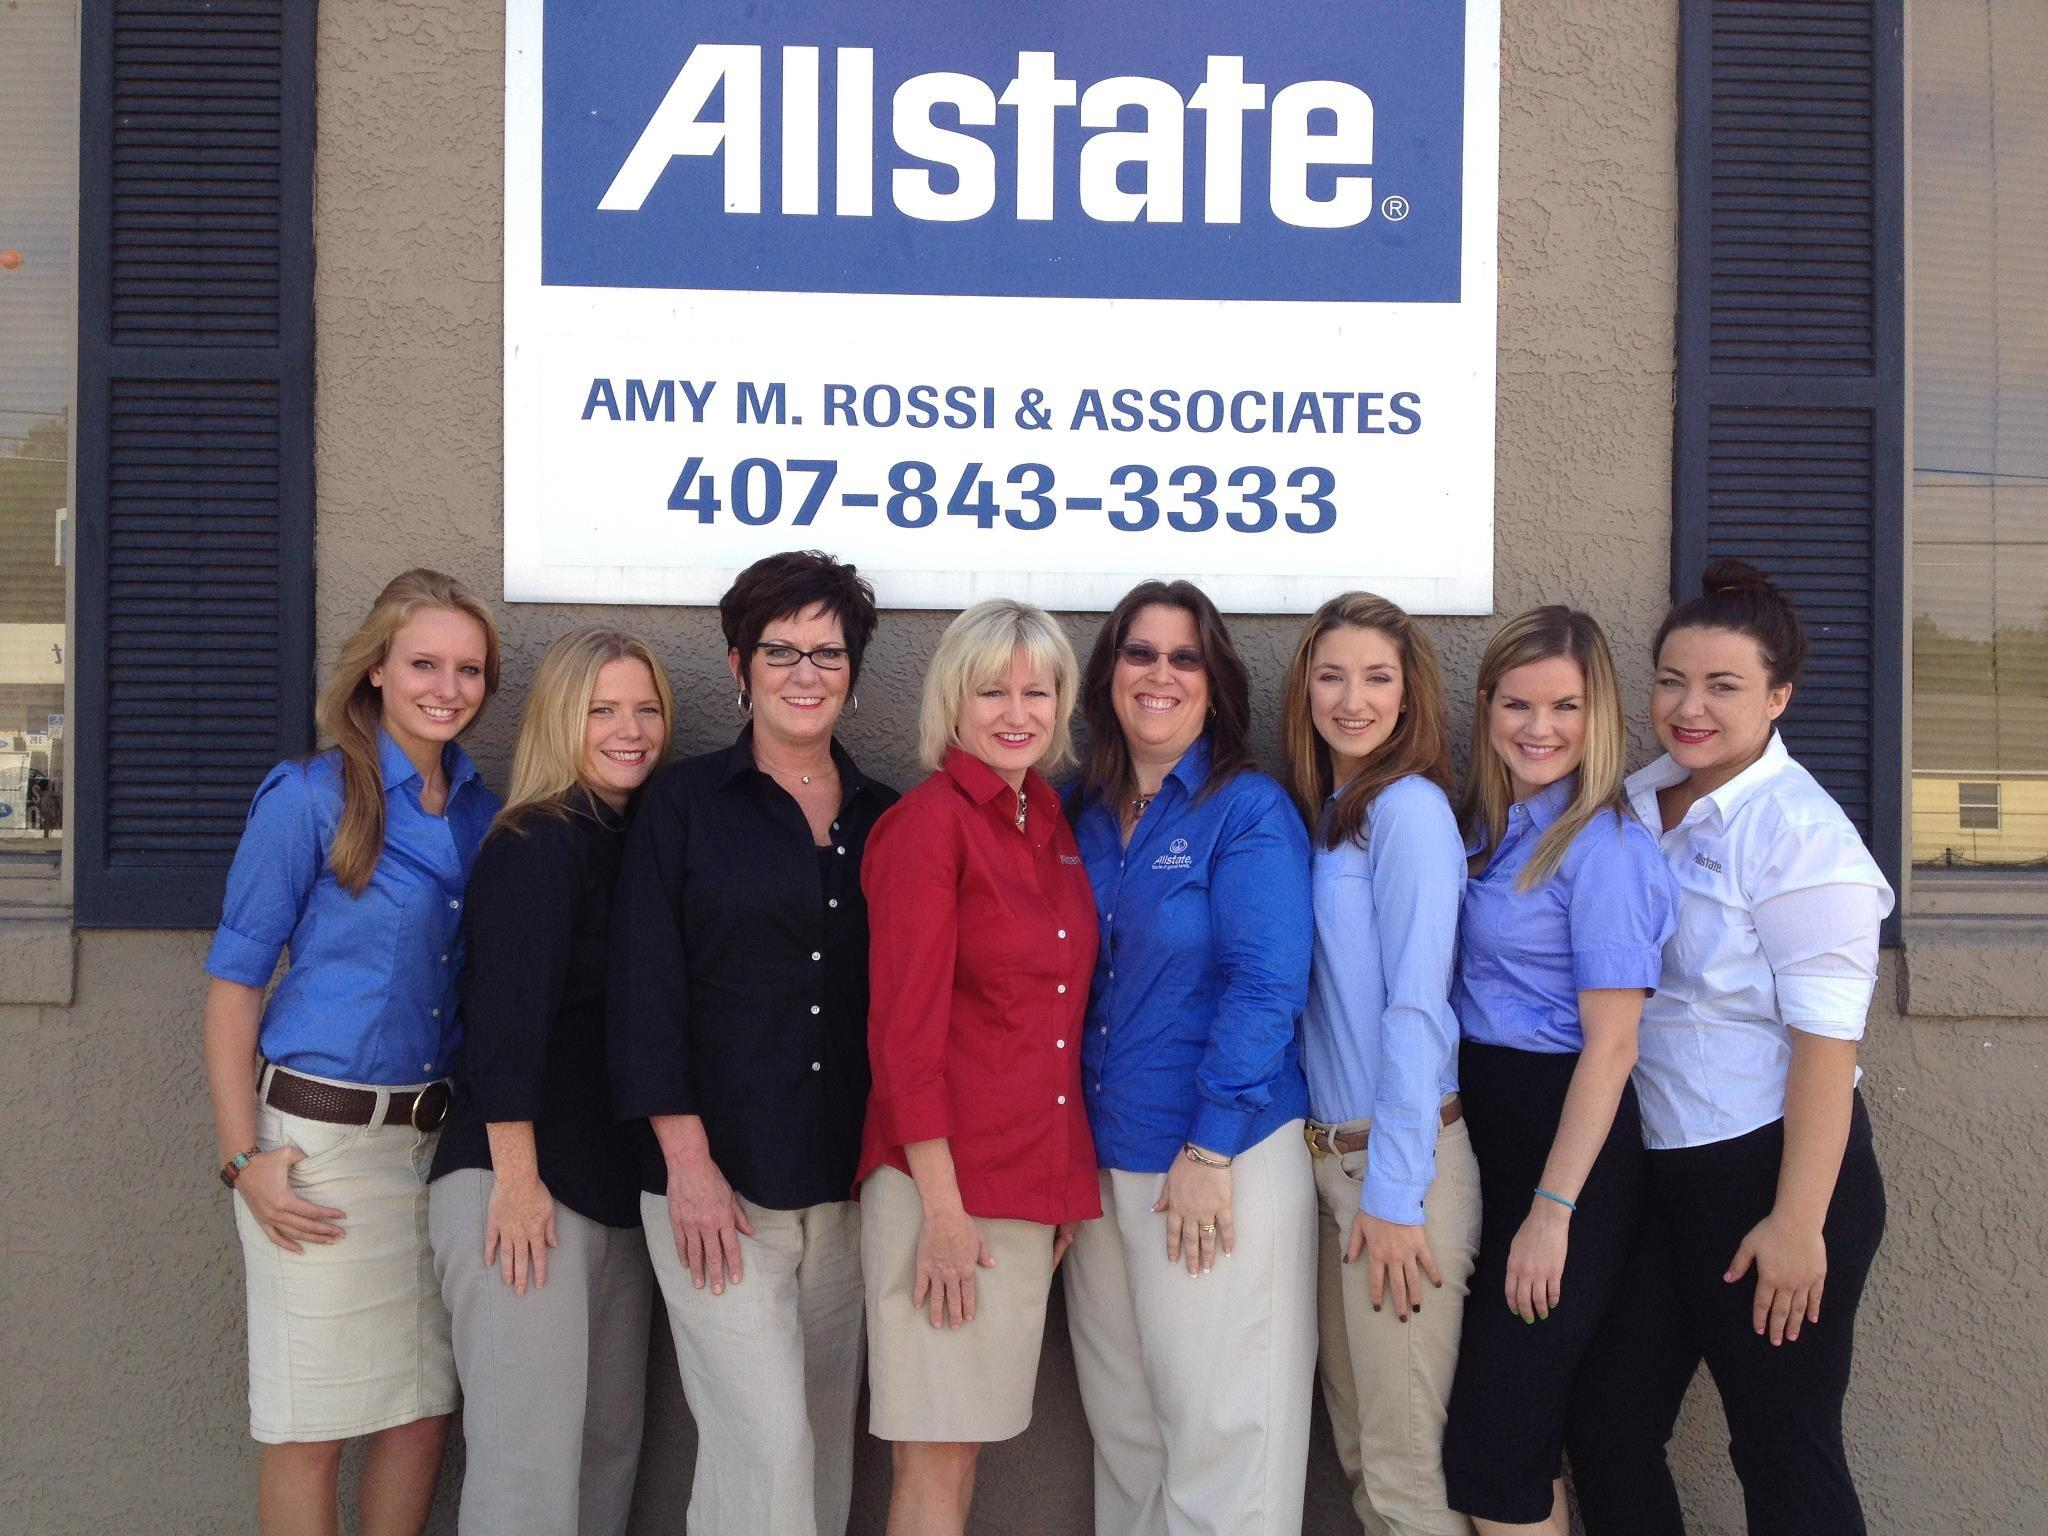 Amy Rossi: Allstate Insurance image 6